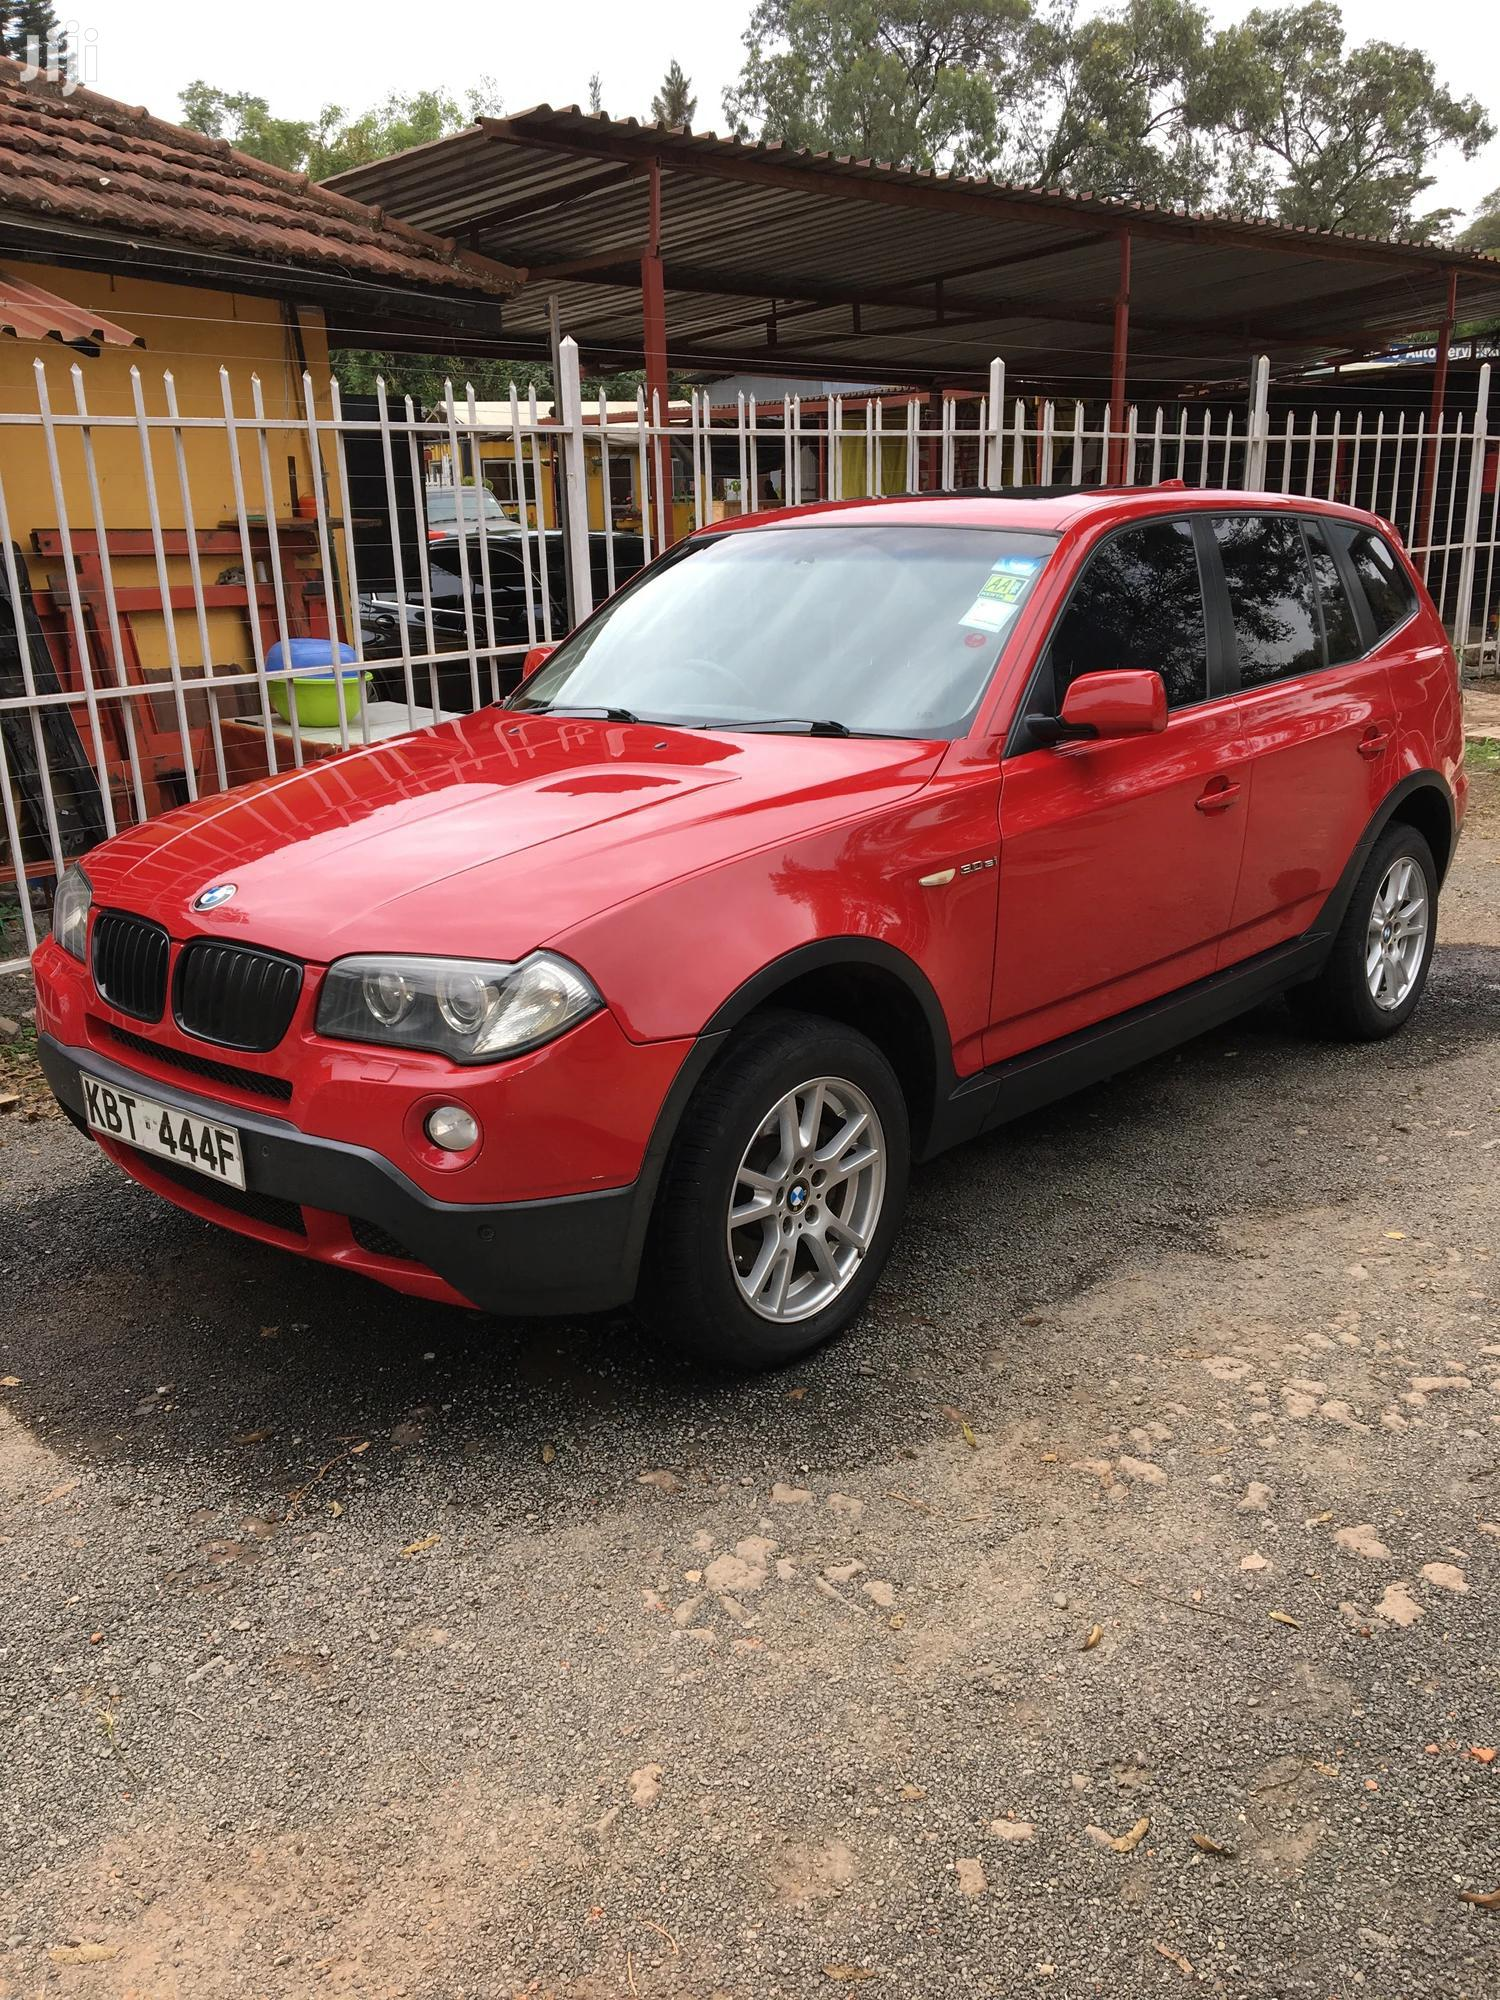 Archive: BMW X3 2008 3.0si Exclusive Automatic Red